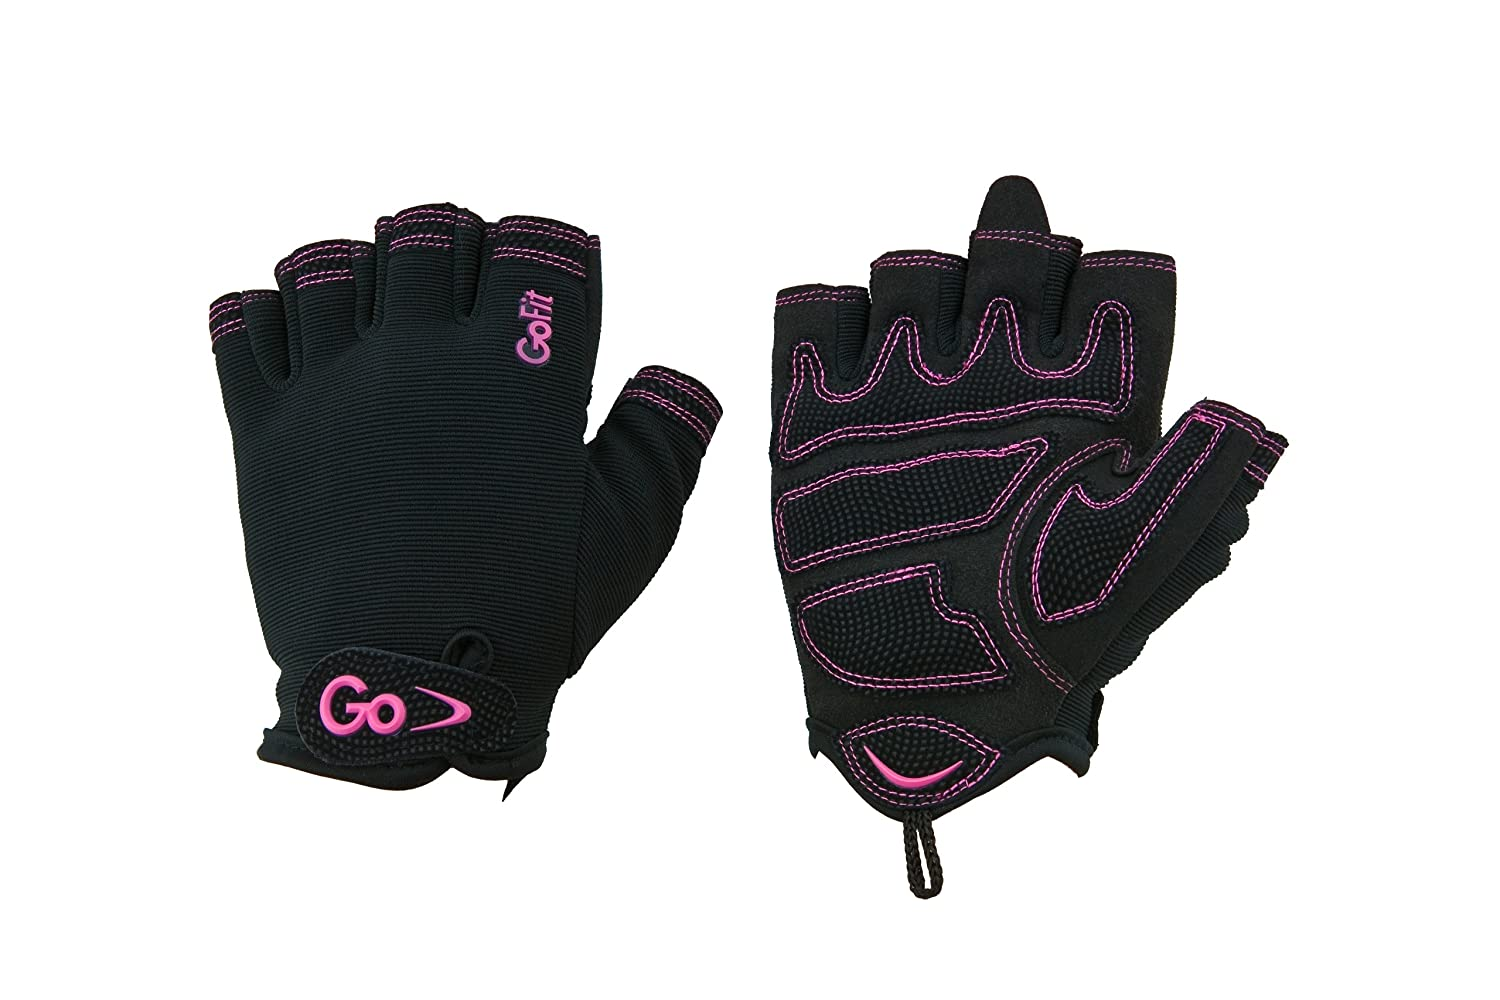 GoFit GF-WCT-LG Women's Cross Training Glove With Etched Synthetic Leather Palm (Black/Pink)